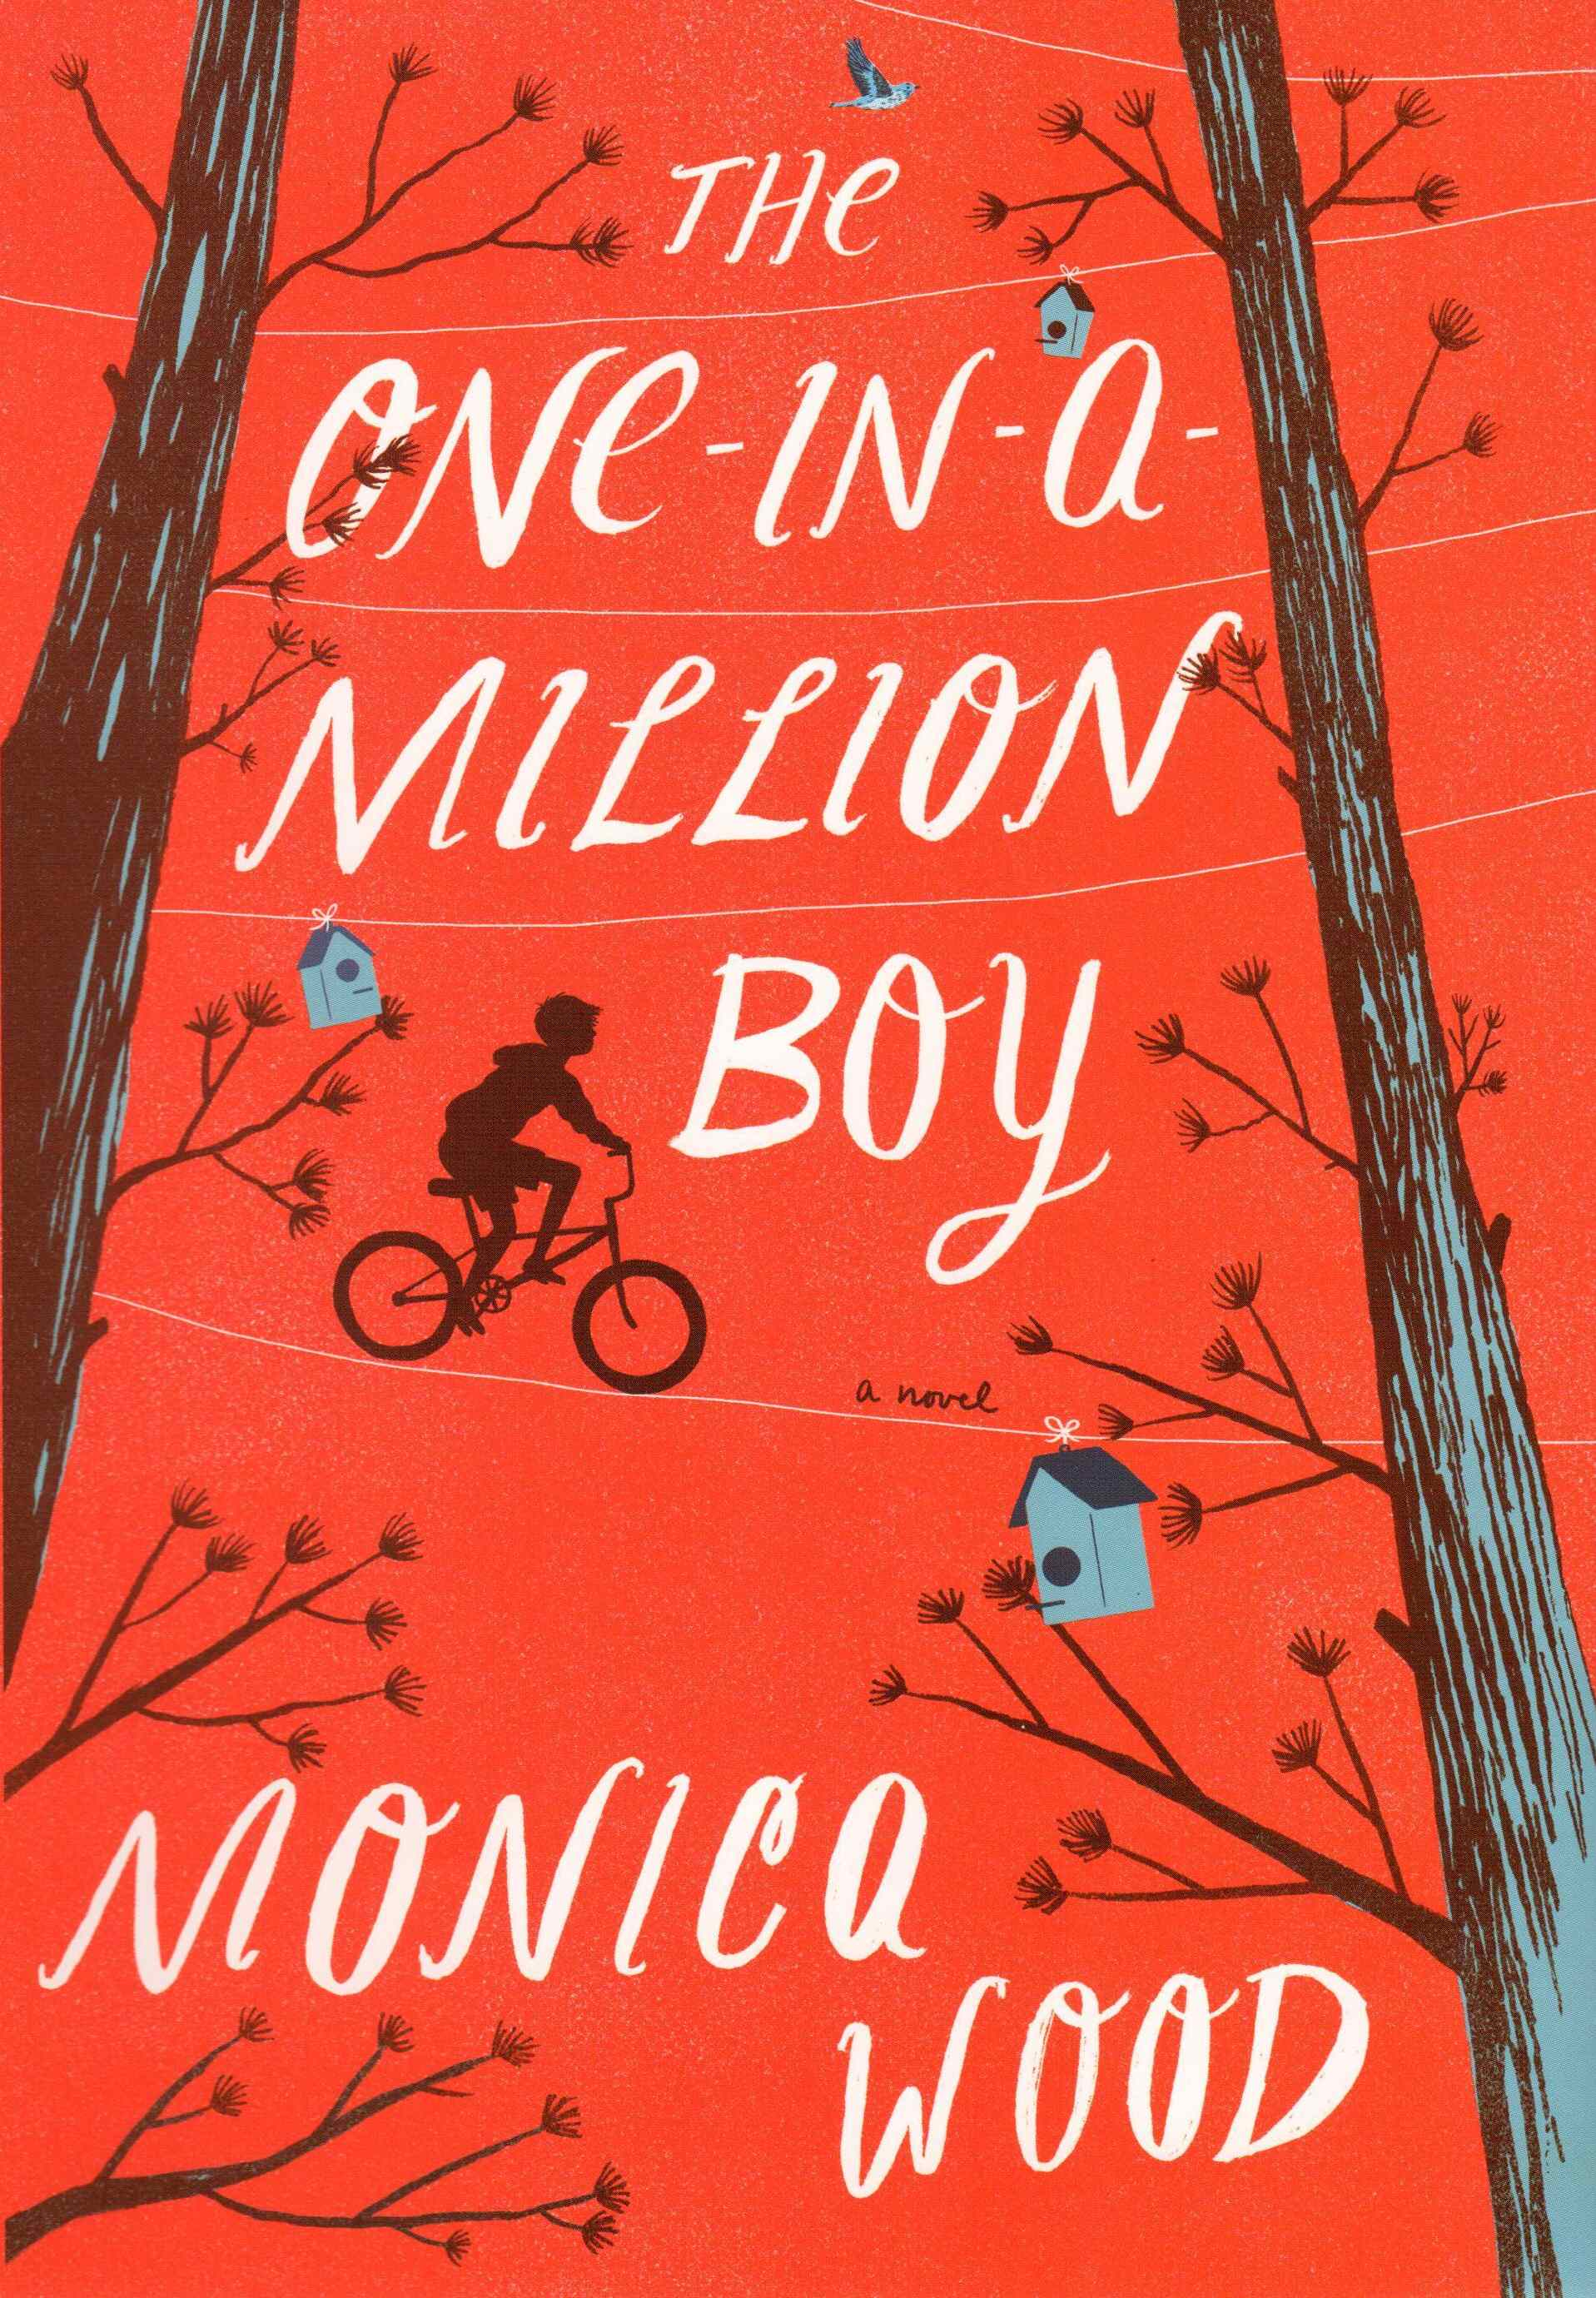 One in a Million Boy by Monica Wood